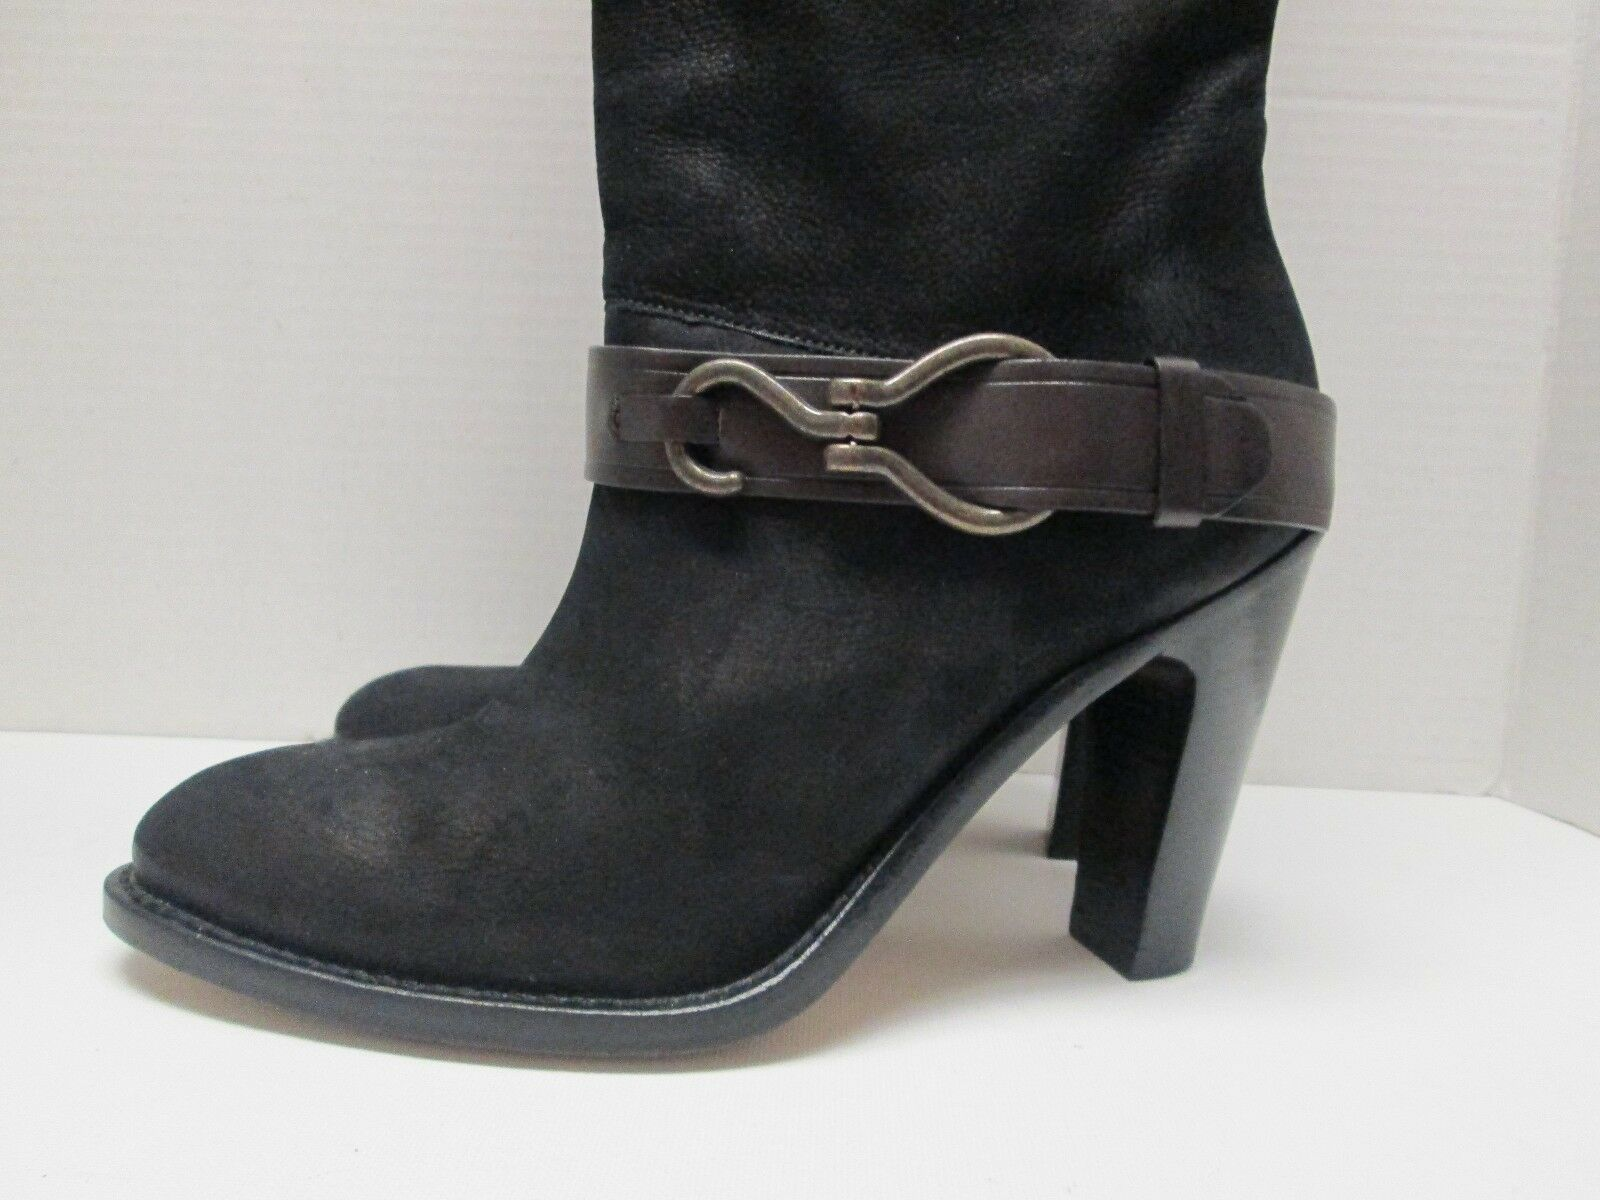 COLE HAAN HAAN HAAN Black Leather Knee High Boots Women's Size 7 B Made in Brazil 36480b